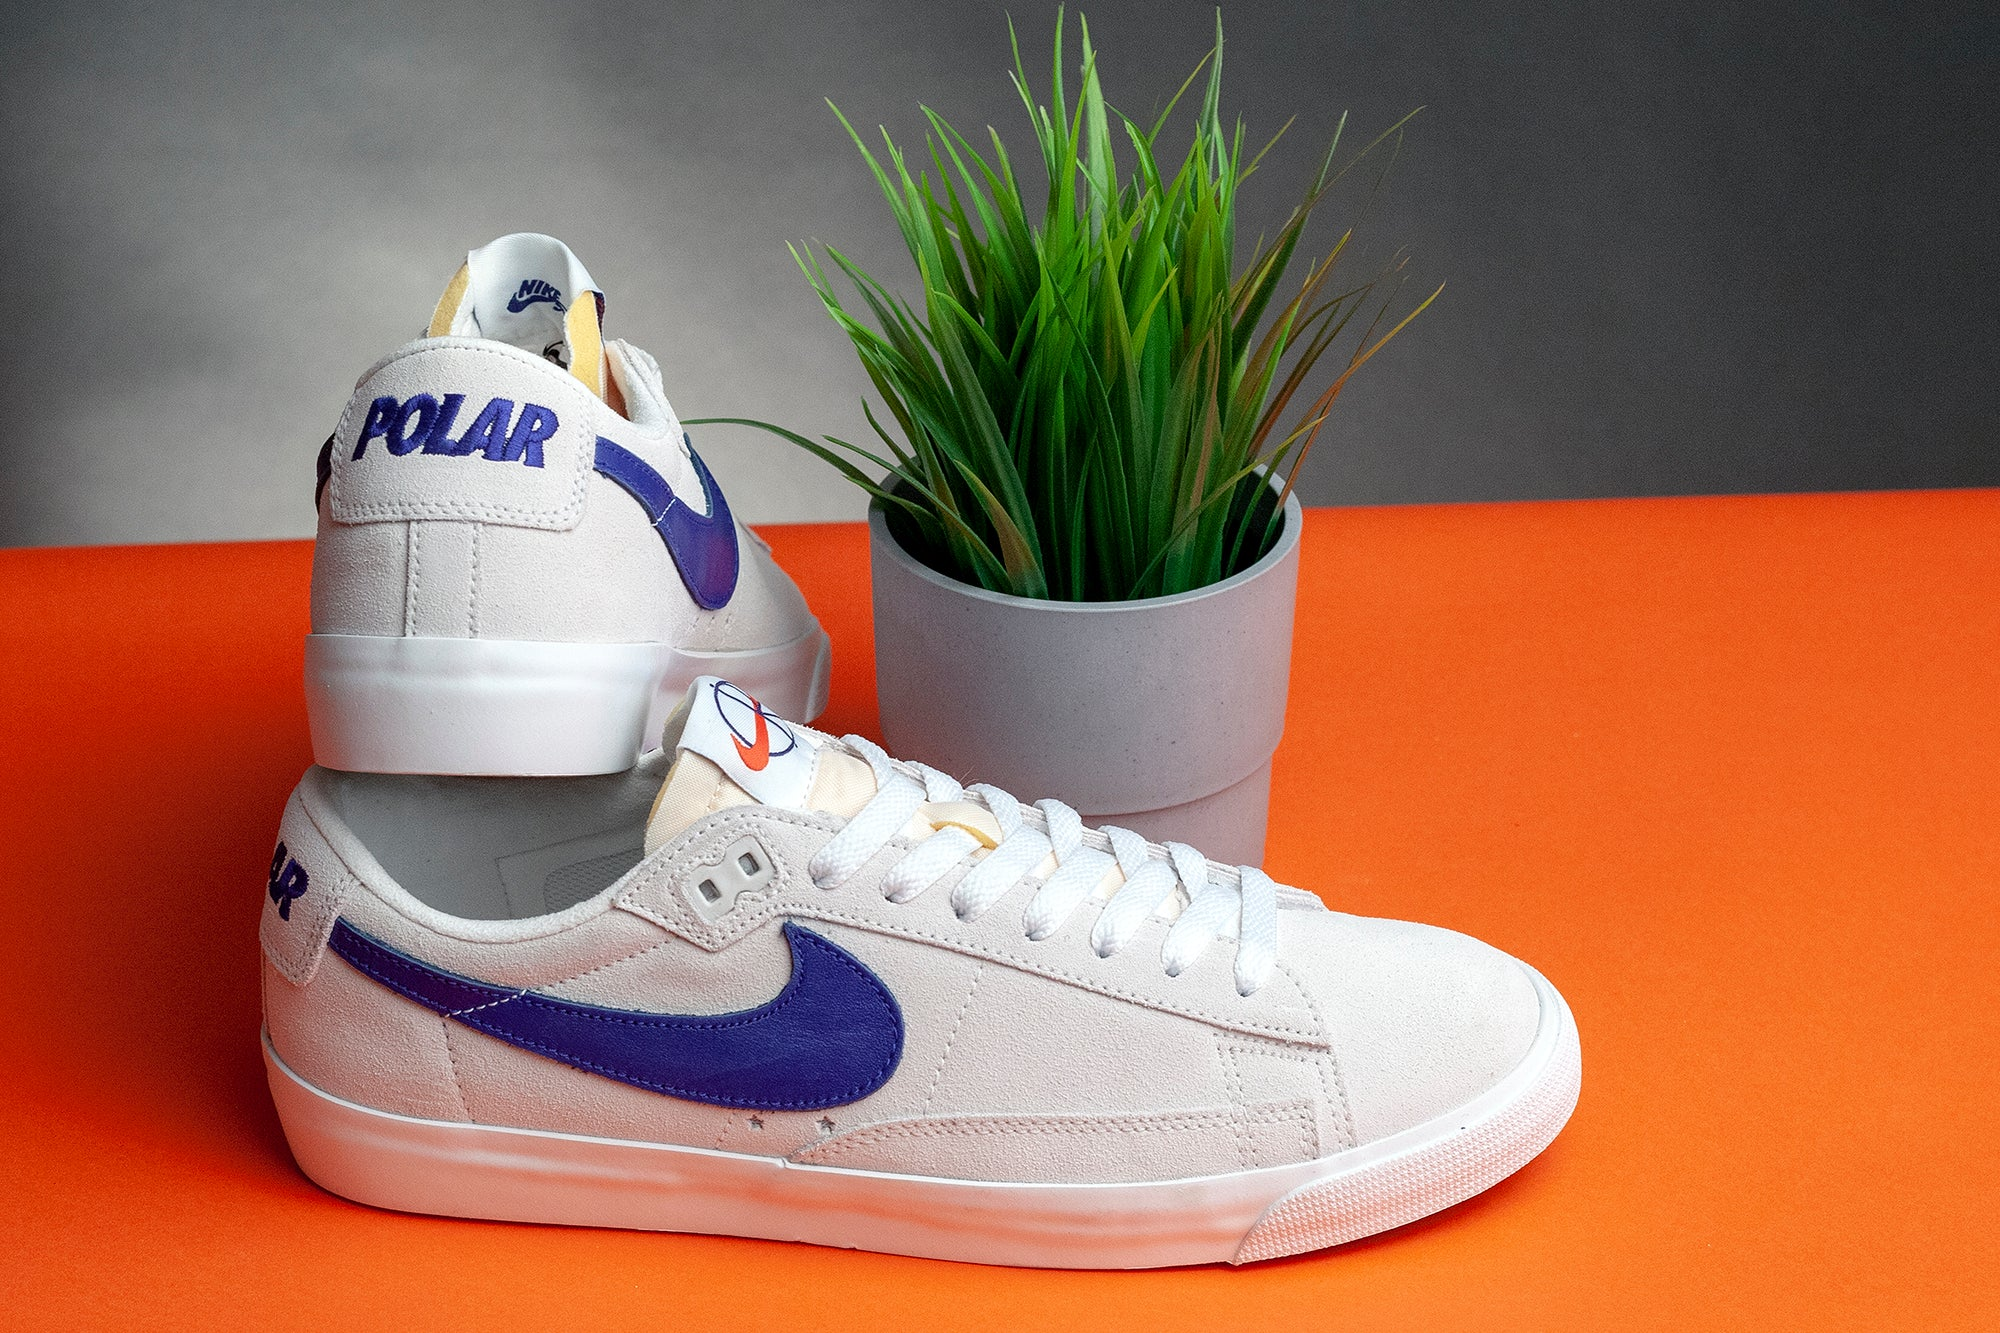 Nike_SB_x_Polar_Zoom_Blazer_Low_1